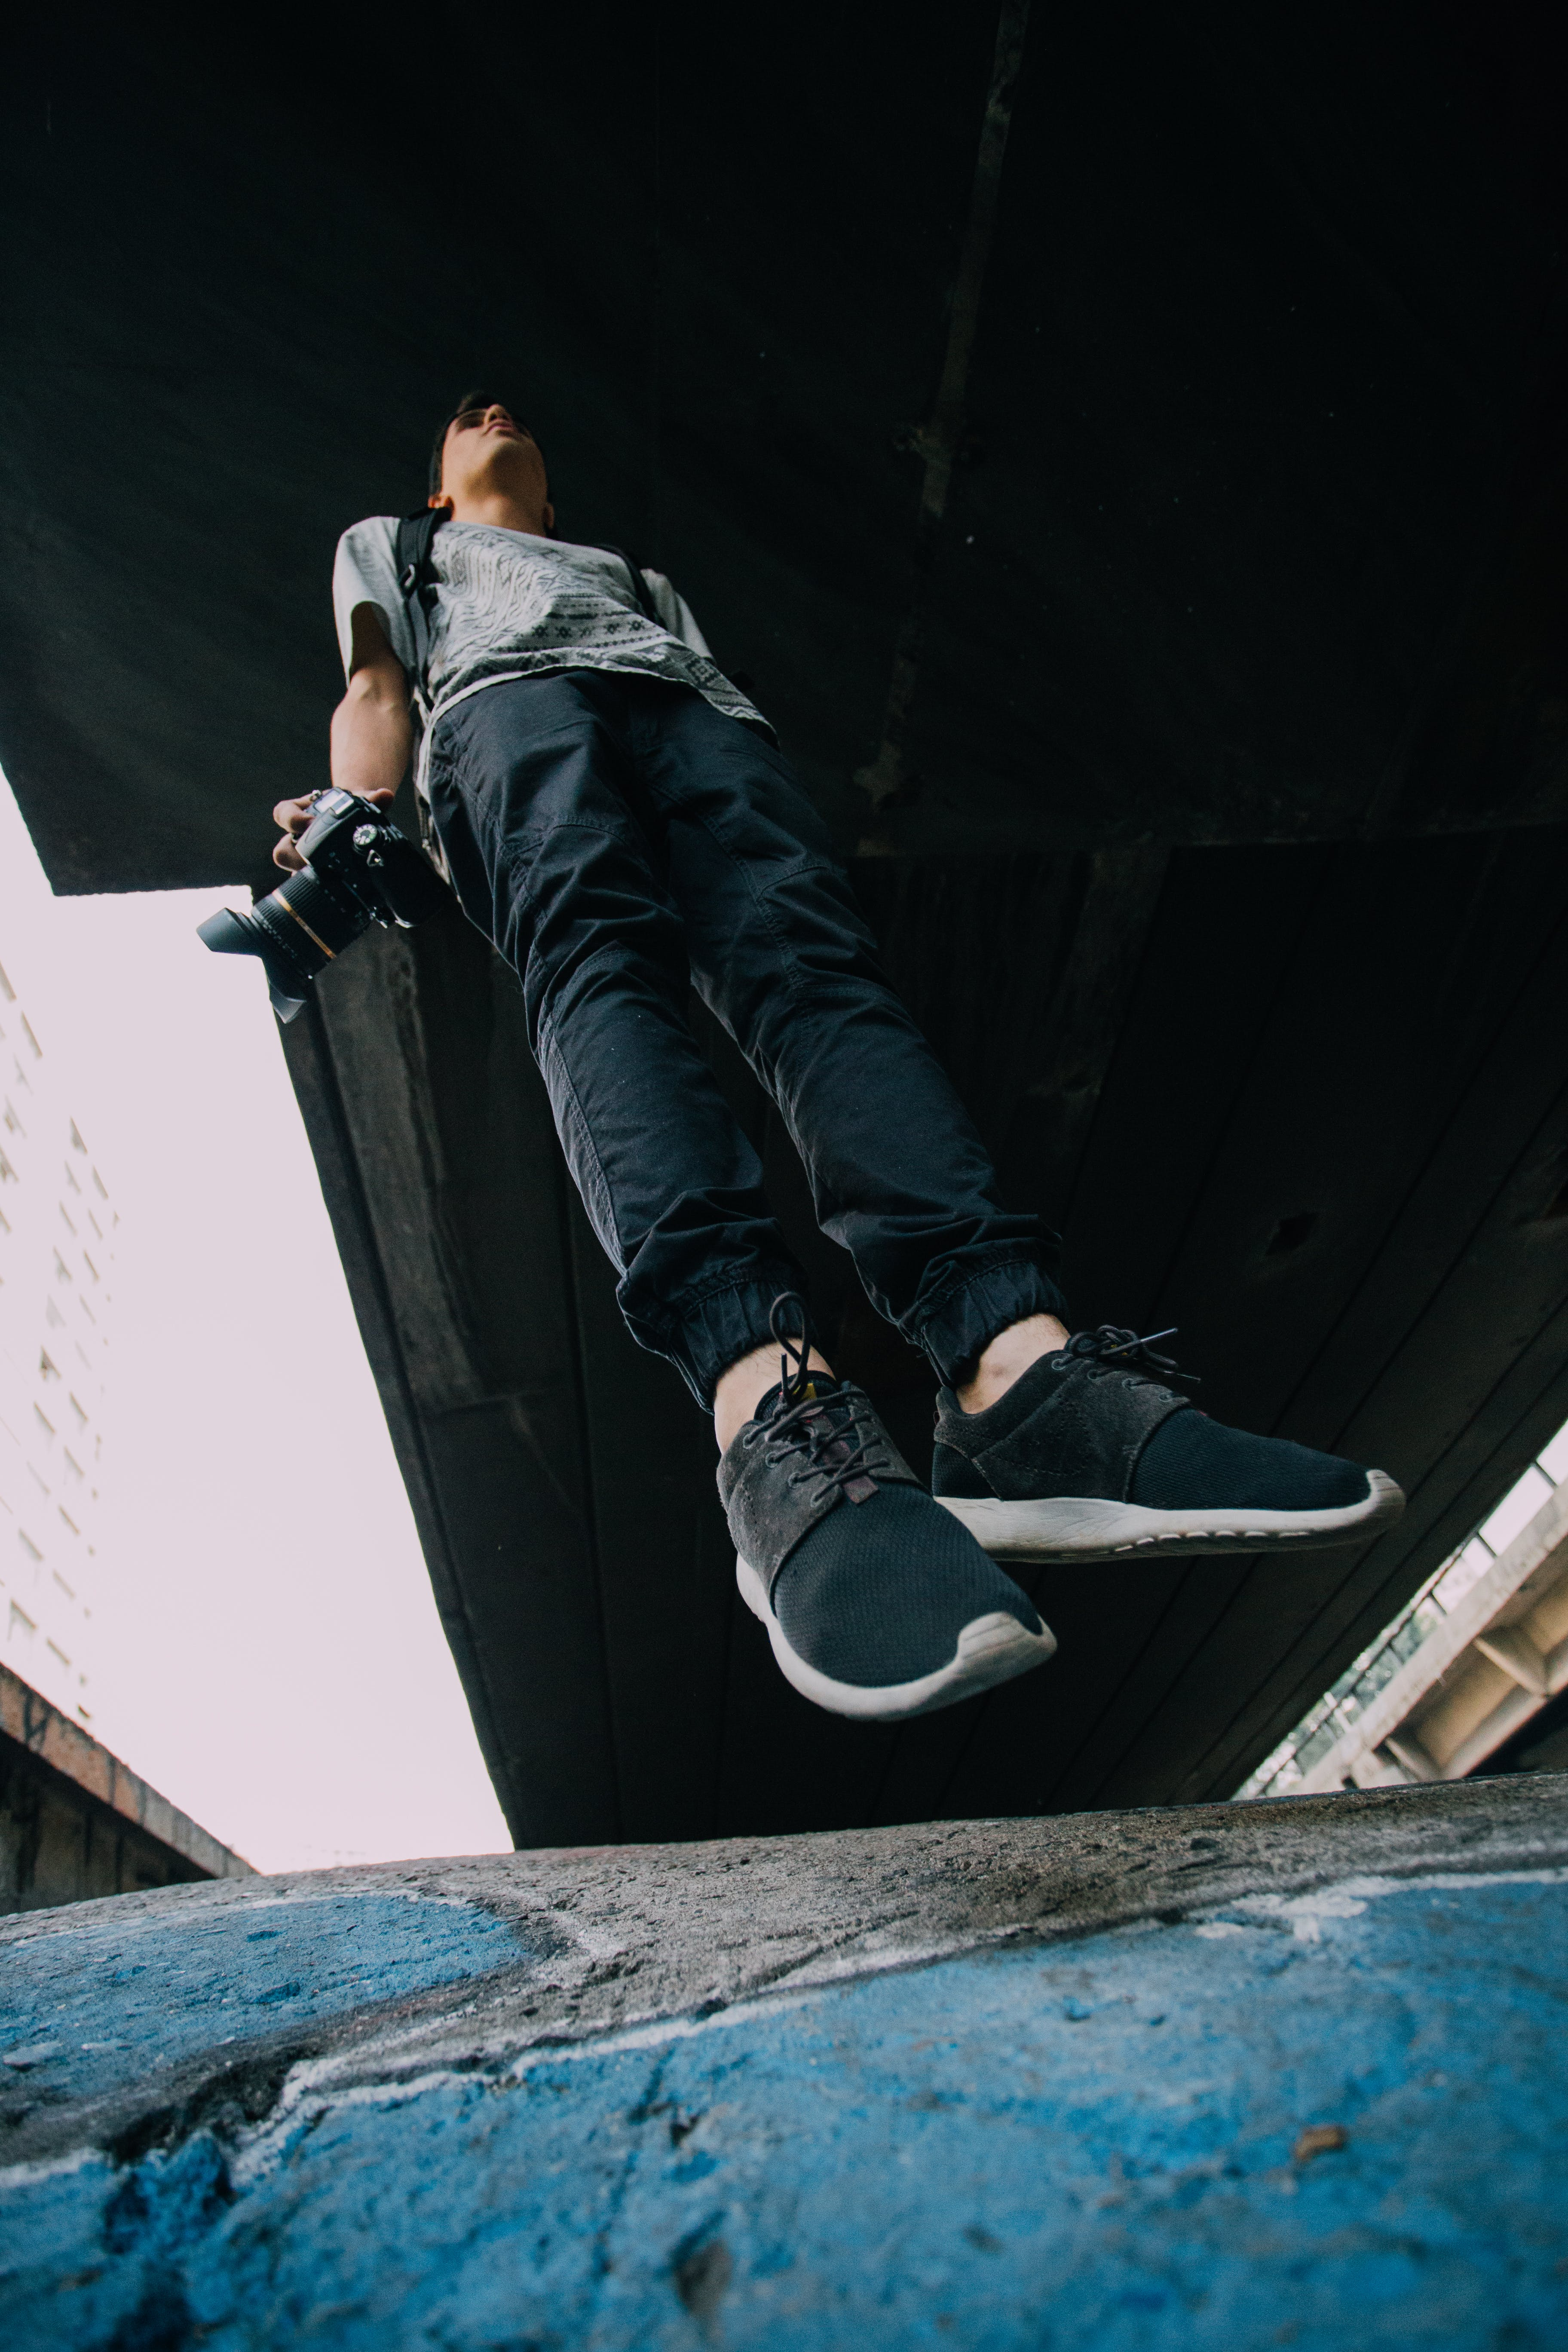 Jumping Man Wearing Black-and-white Shoes